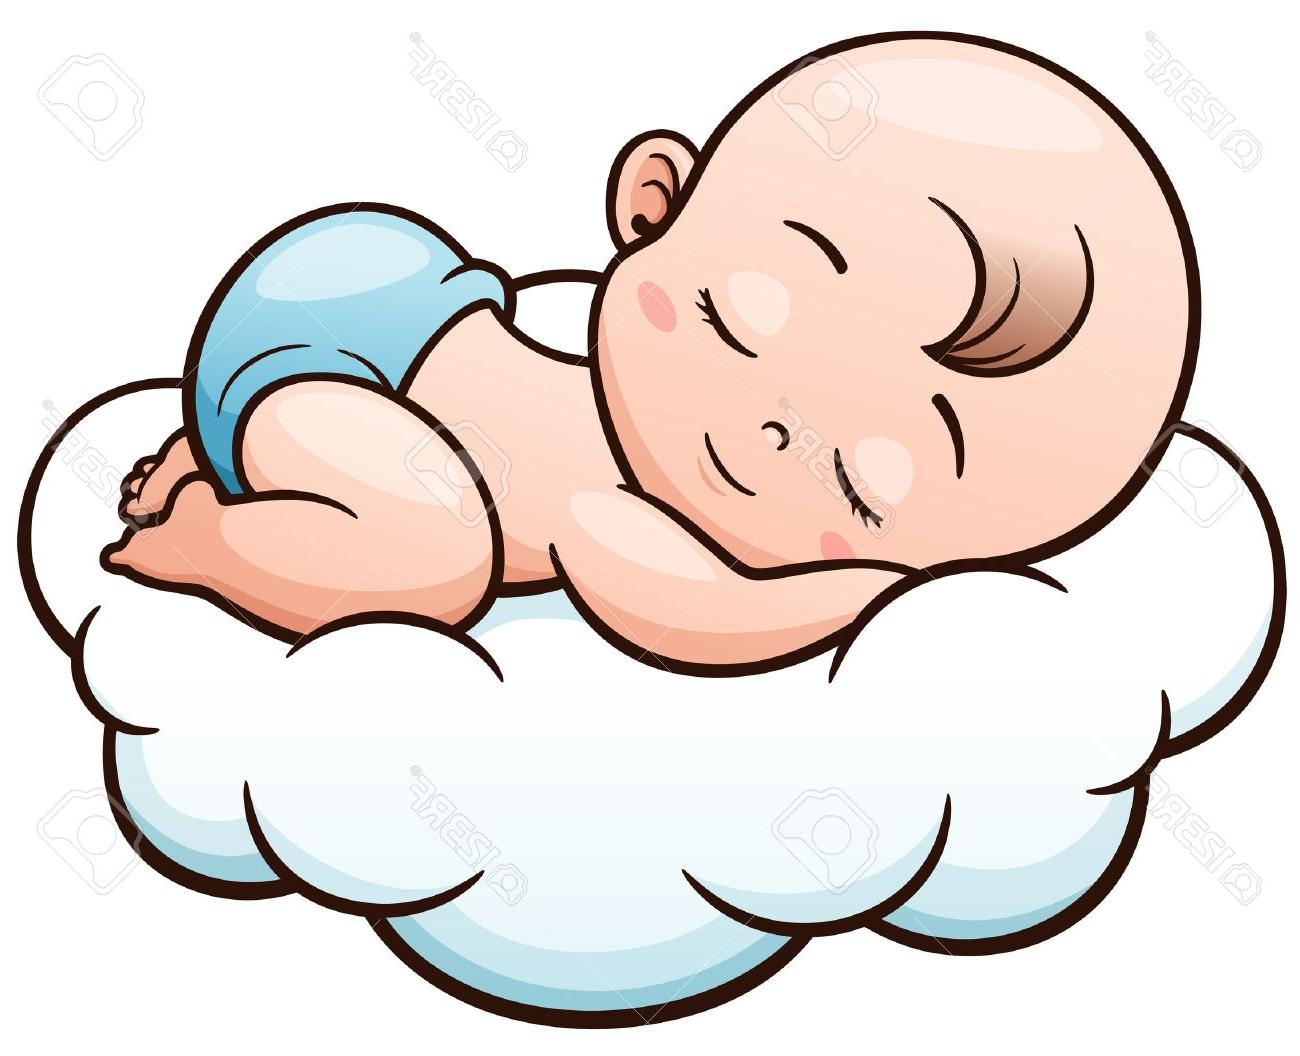 Sleeping baby angel clipart 1 » Clipart Station